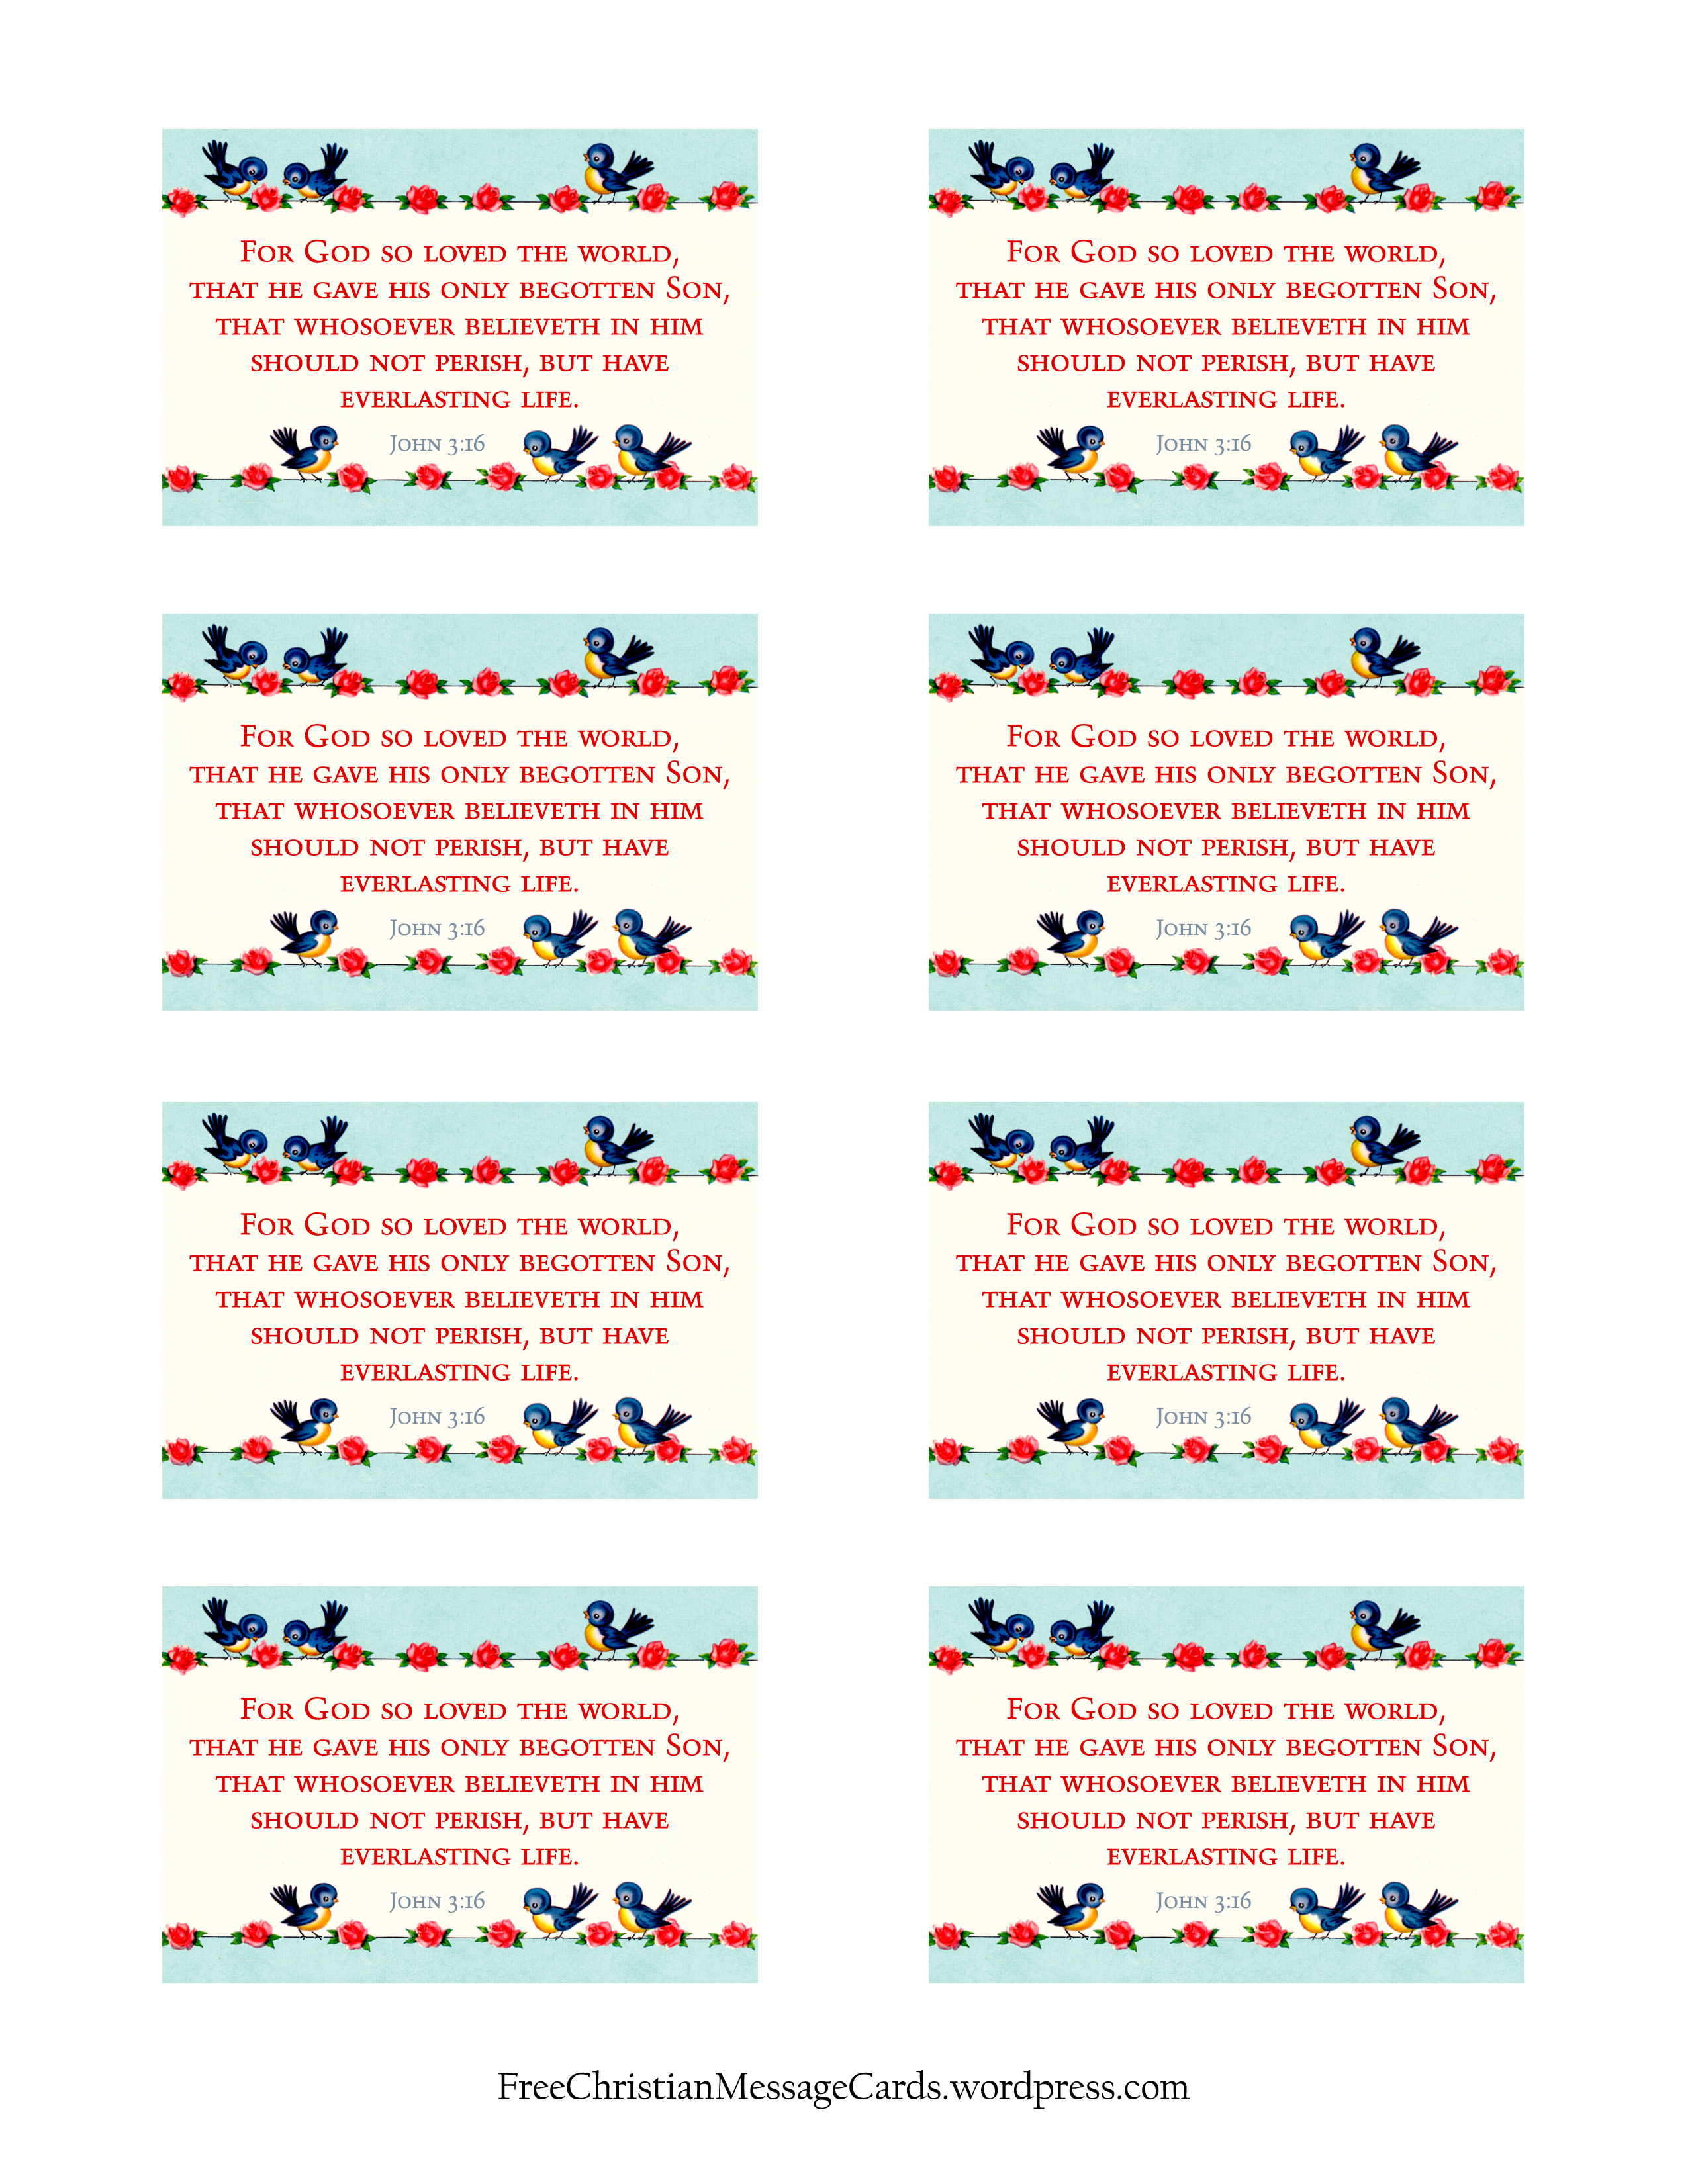 Free Printable Christian Message Cards For God So Loved The World